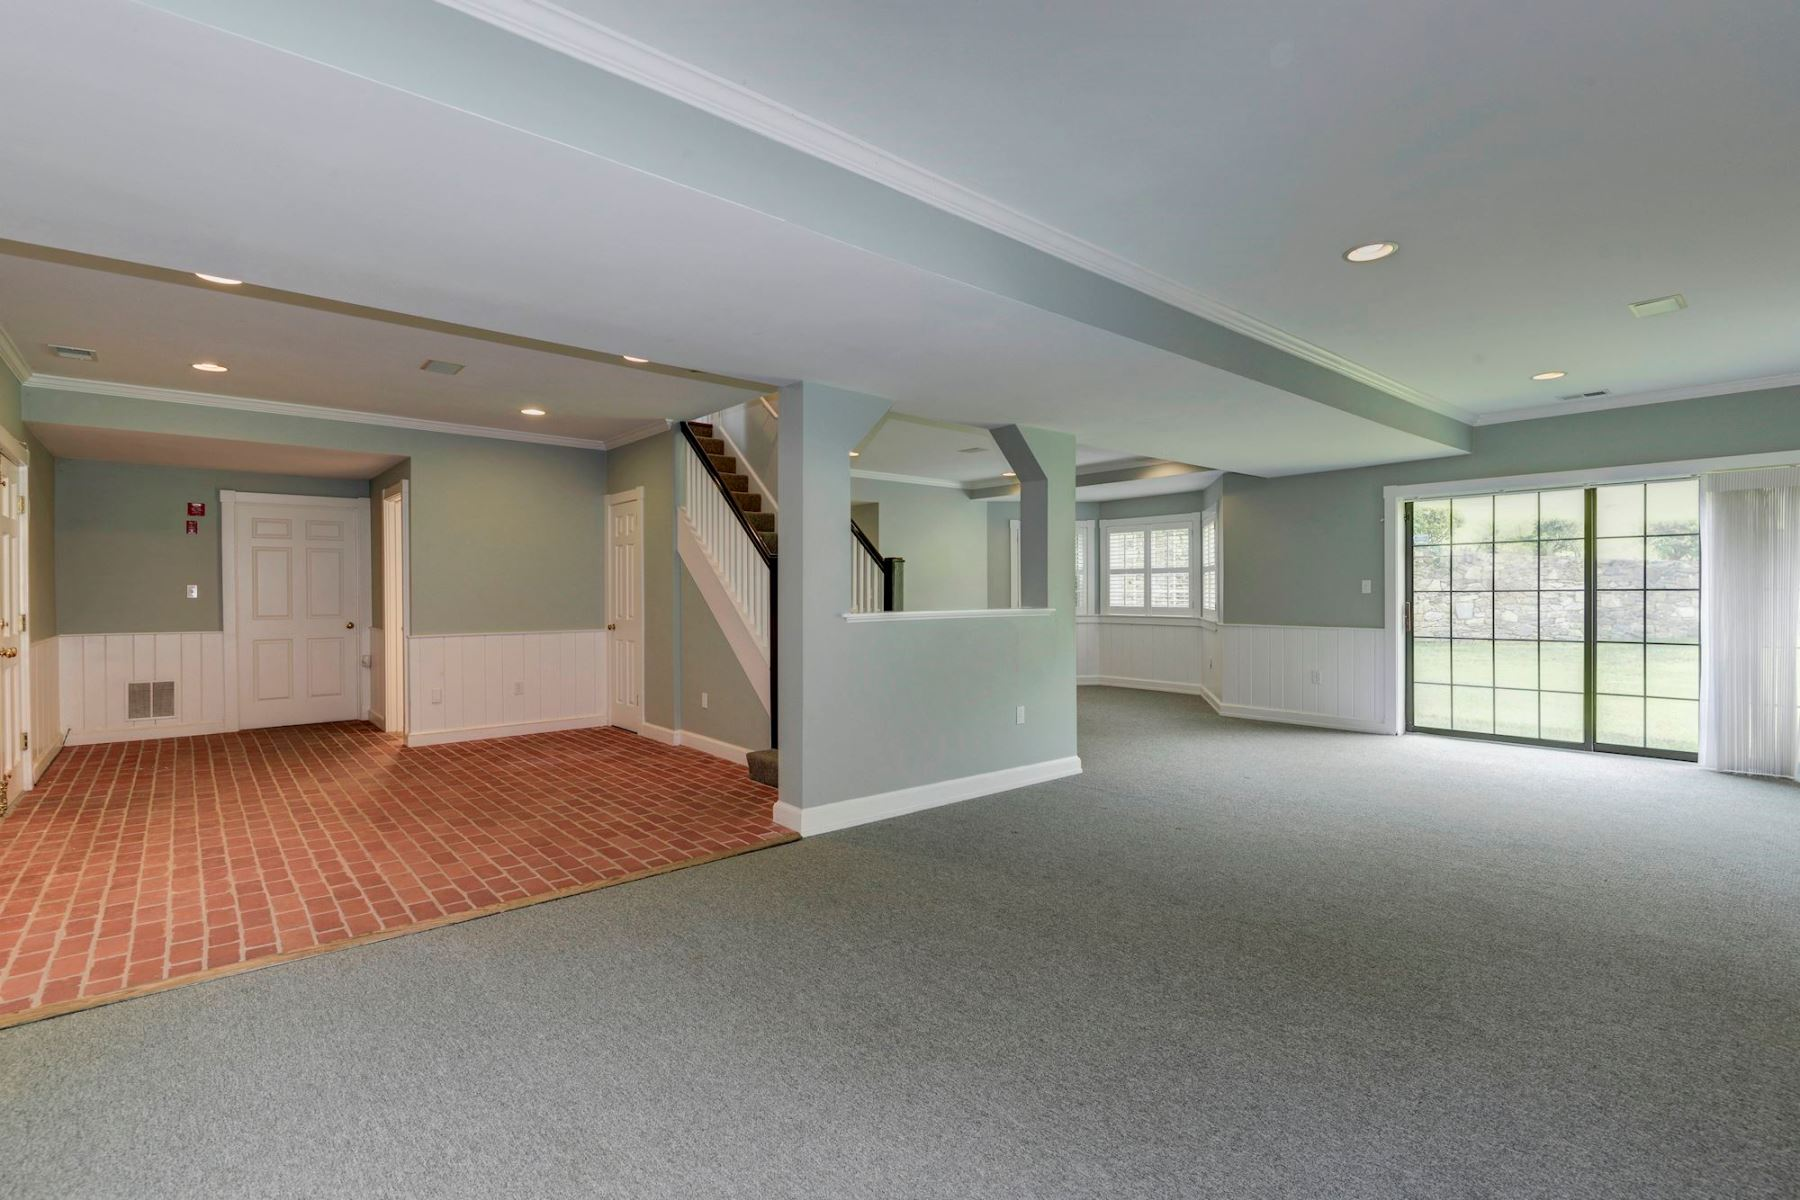 Additional photo for property listing at 14 Riverwood Court, Potomac 14 Riverwood Ct Potomac, Maryland 20854 United States